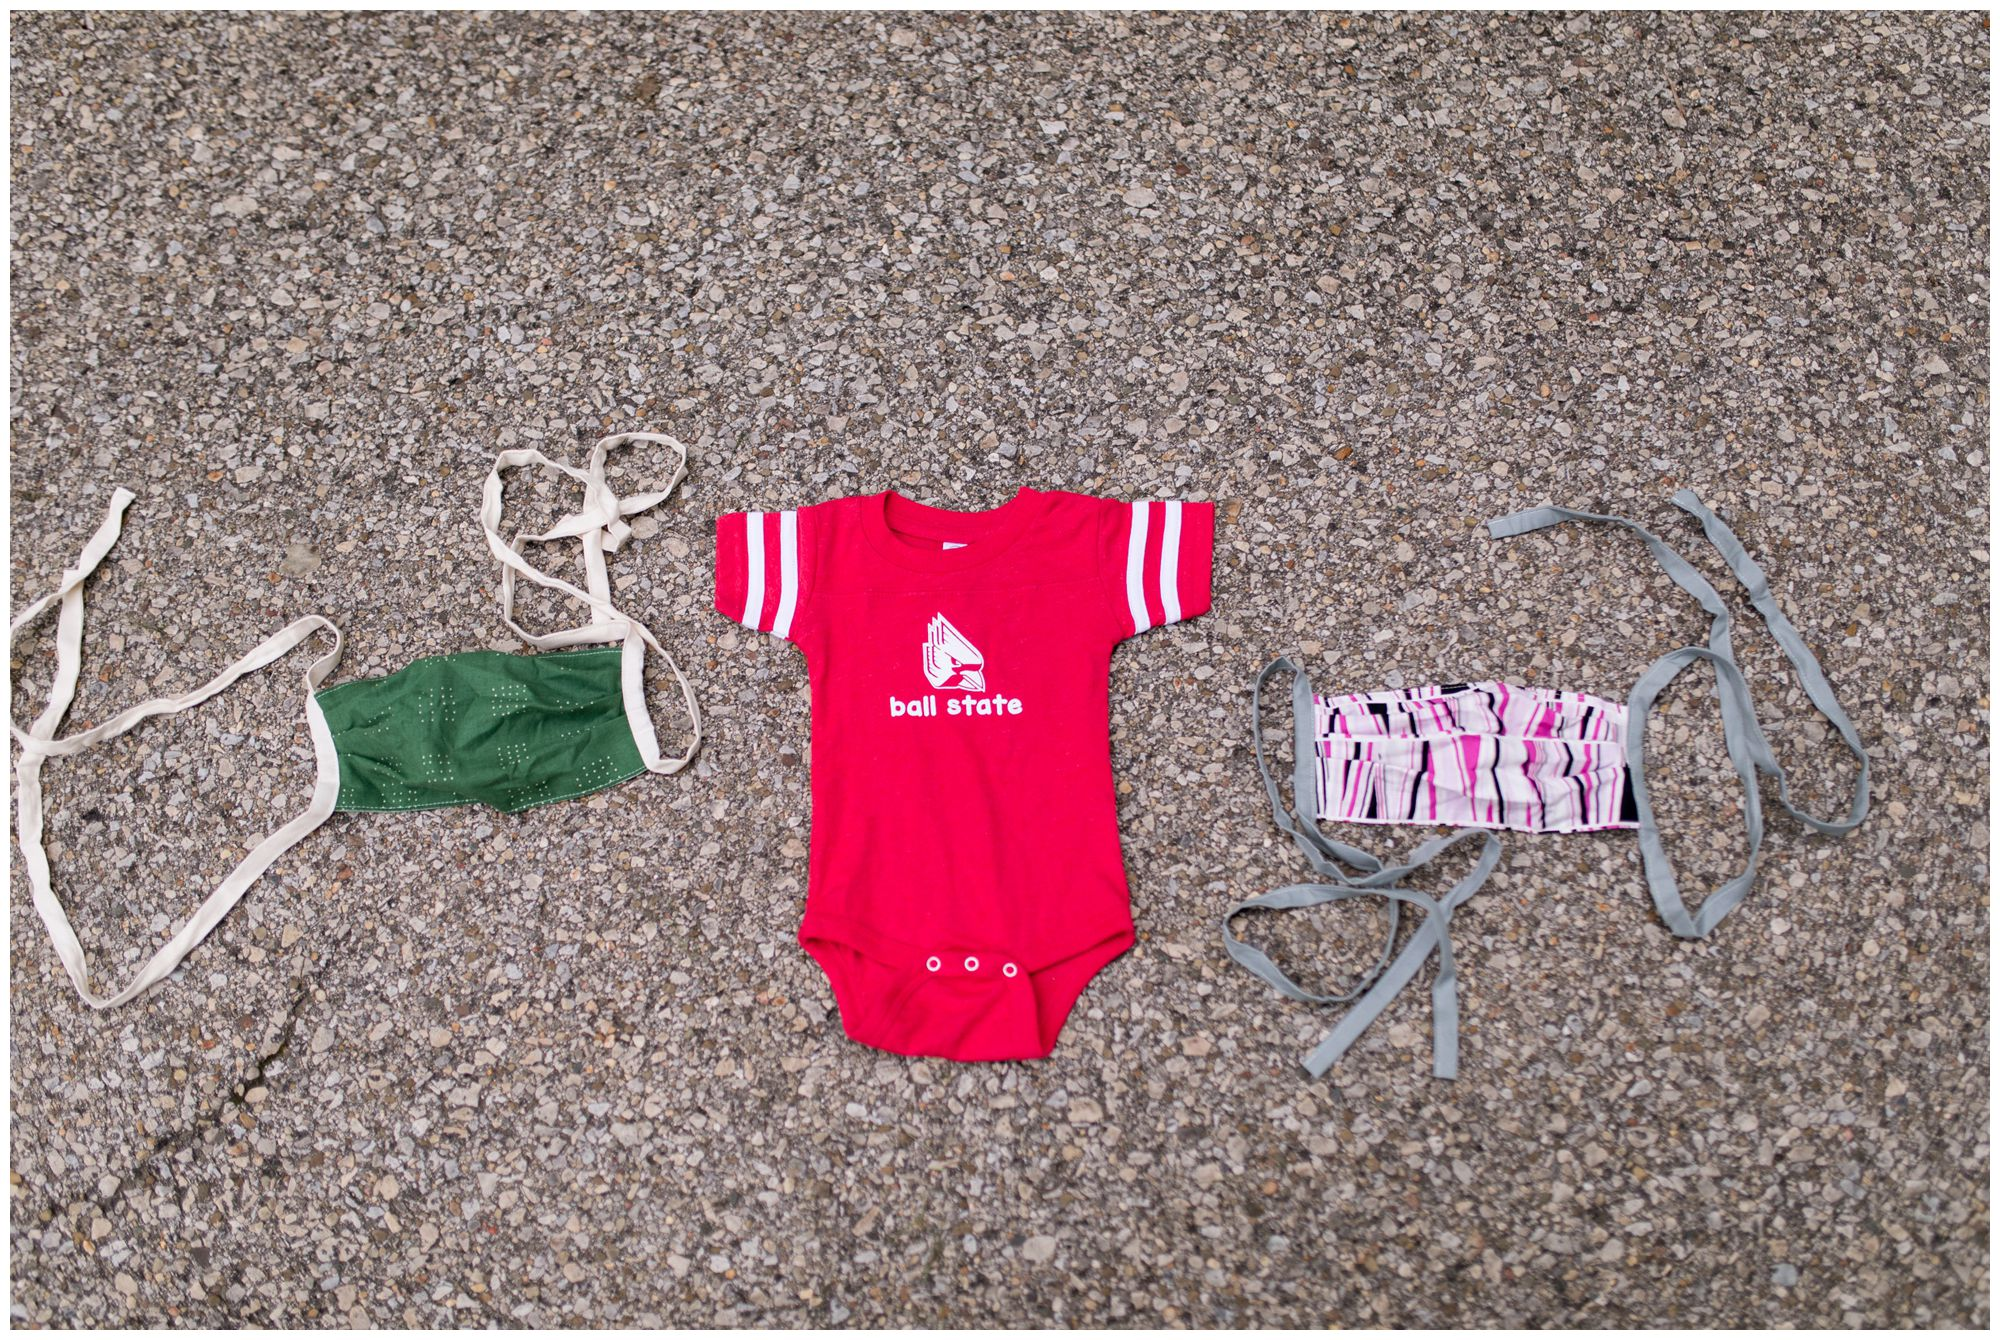 Ball State baby onesie with face masks